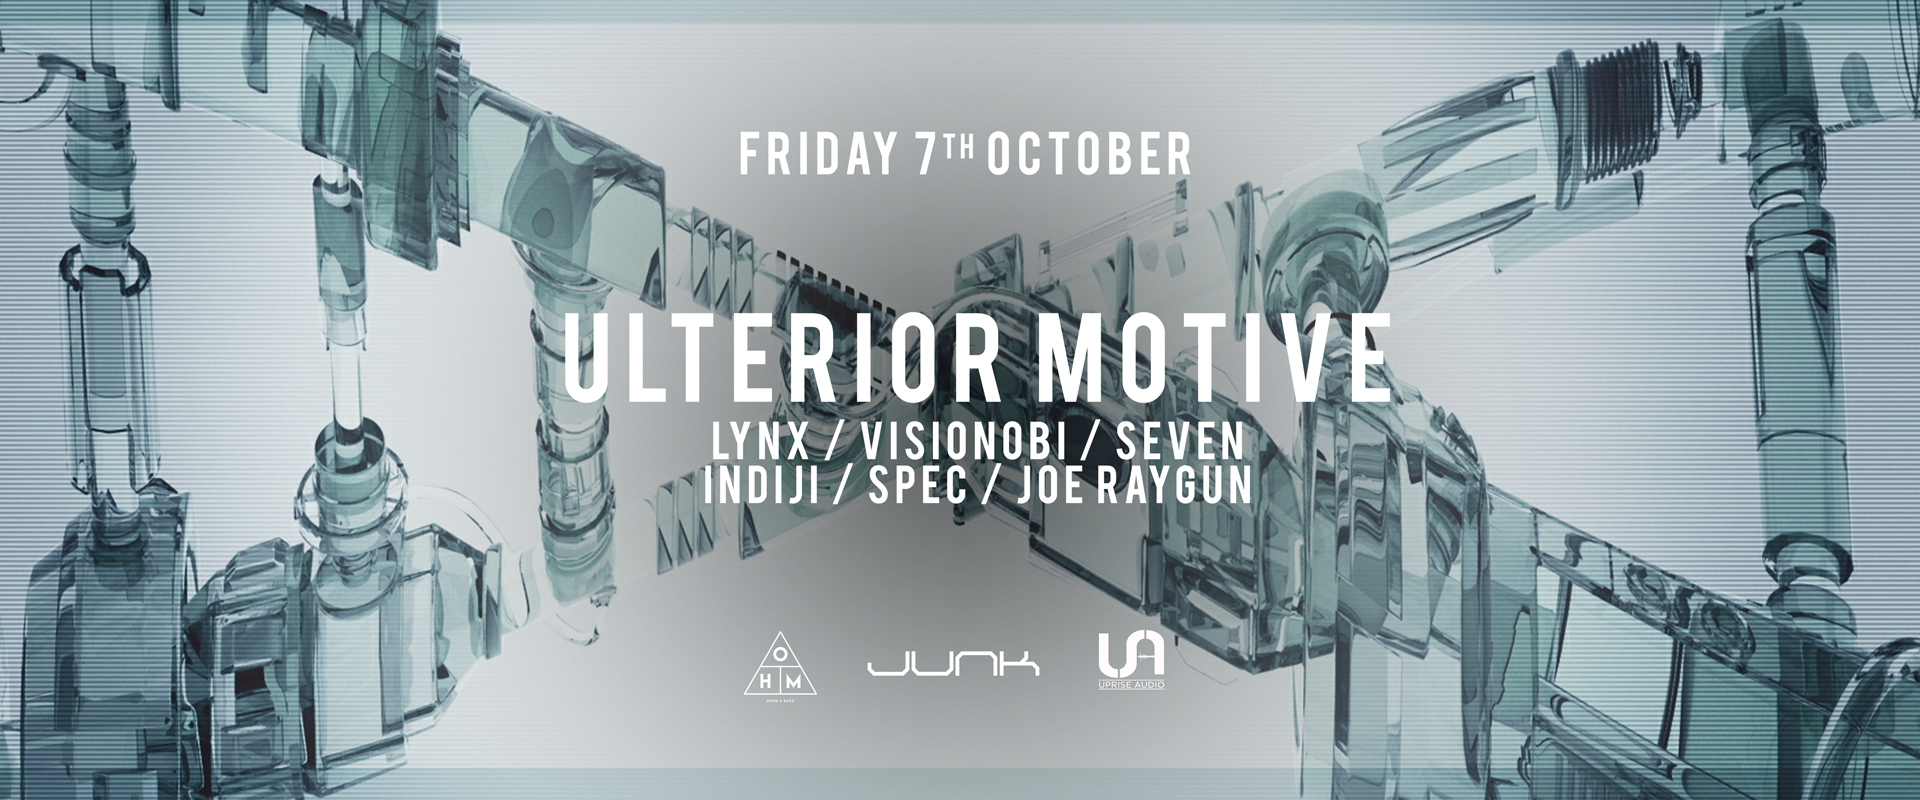 OHM Presents: Ulterior Motive & Uprise Audio on Fri 7th Oct 2016 at Junk, Southampton | Fatsoma